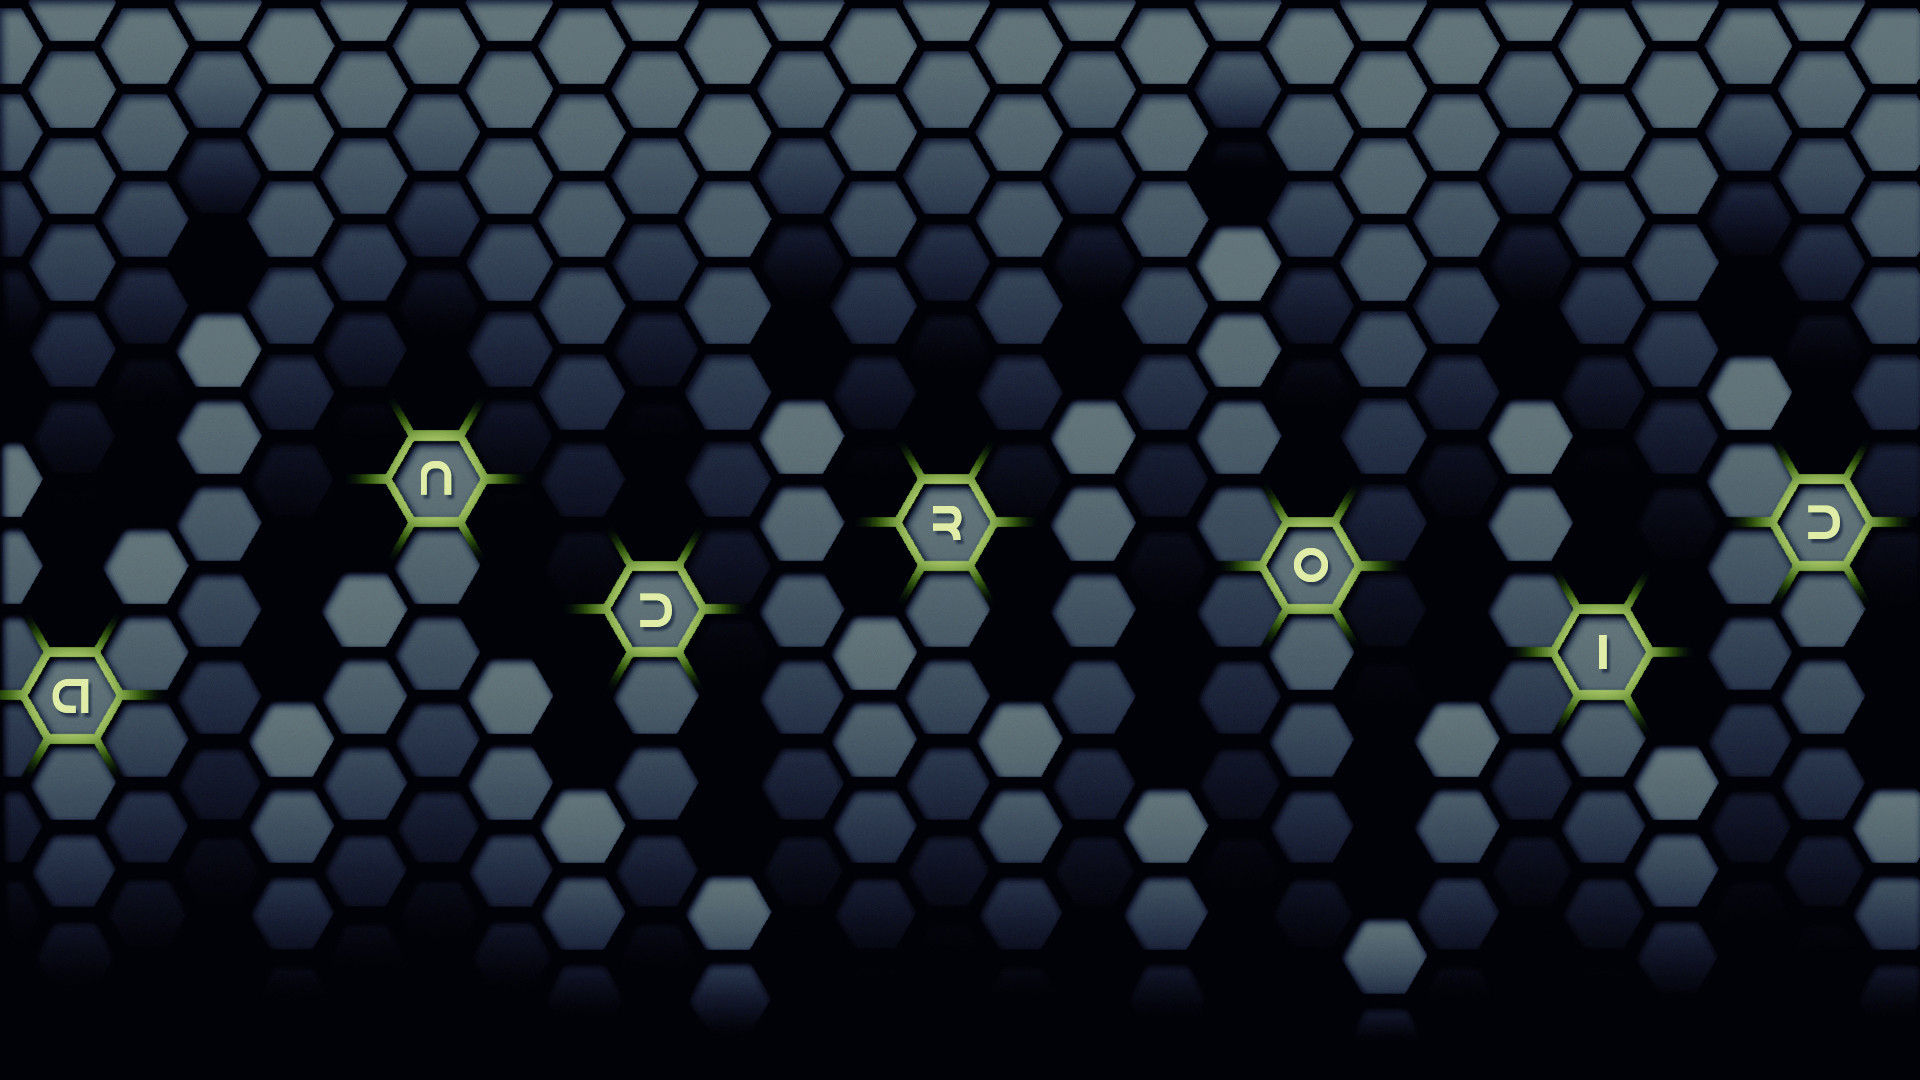 Res: 1920x1080, Awesome Honeycomb Wallpaper